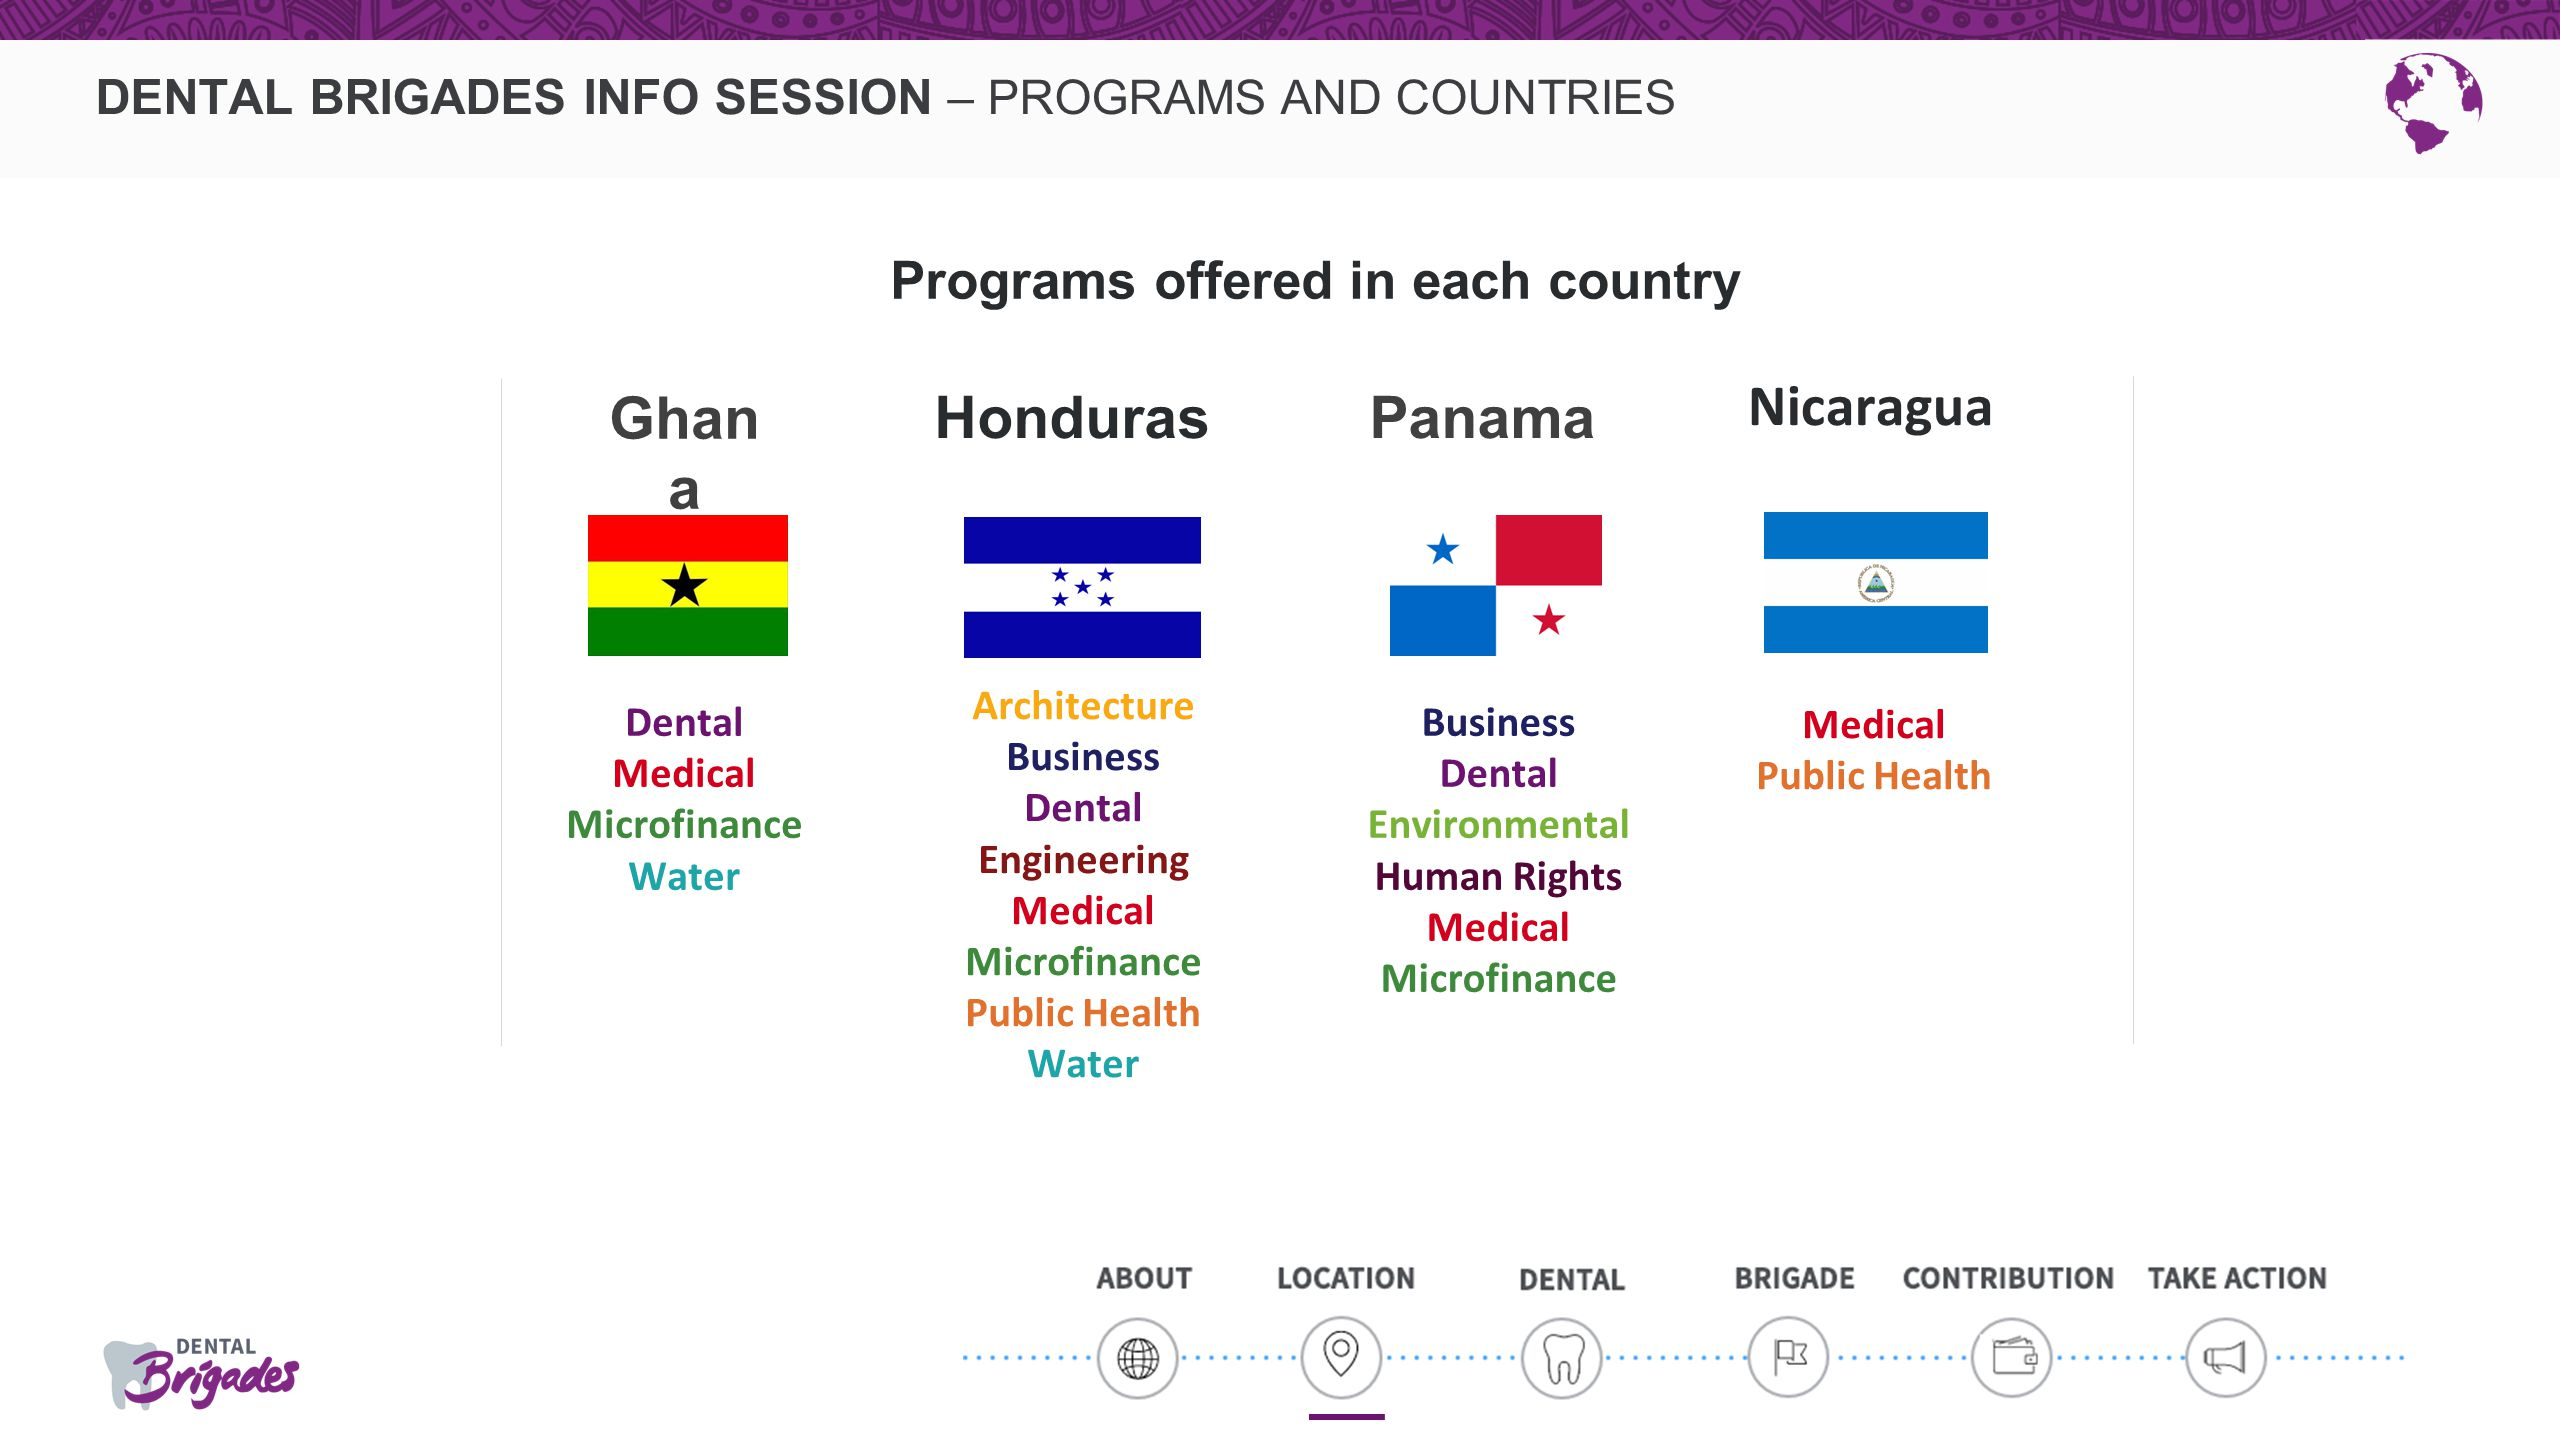 DENTAL BRIGADES INFO SESSION – PROGRAMS AND COUNTRIES Ghan a Panama Dental Medical Microfinance Water Business Dental Environmental Human Rights Medic